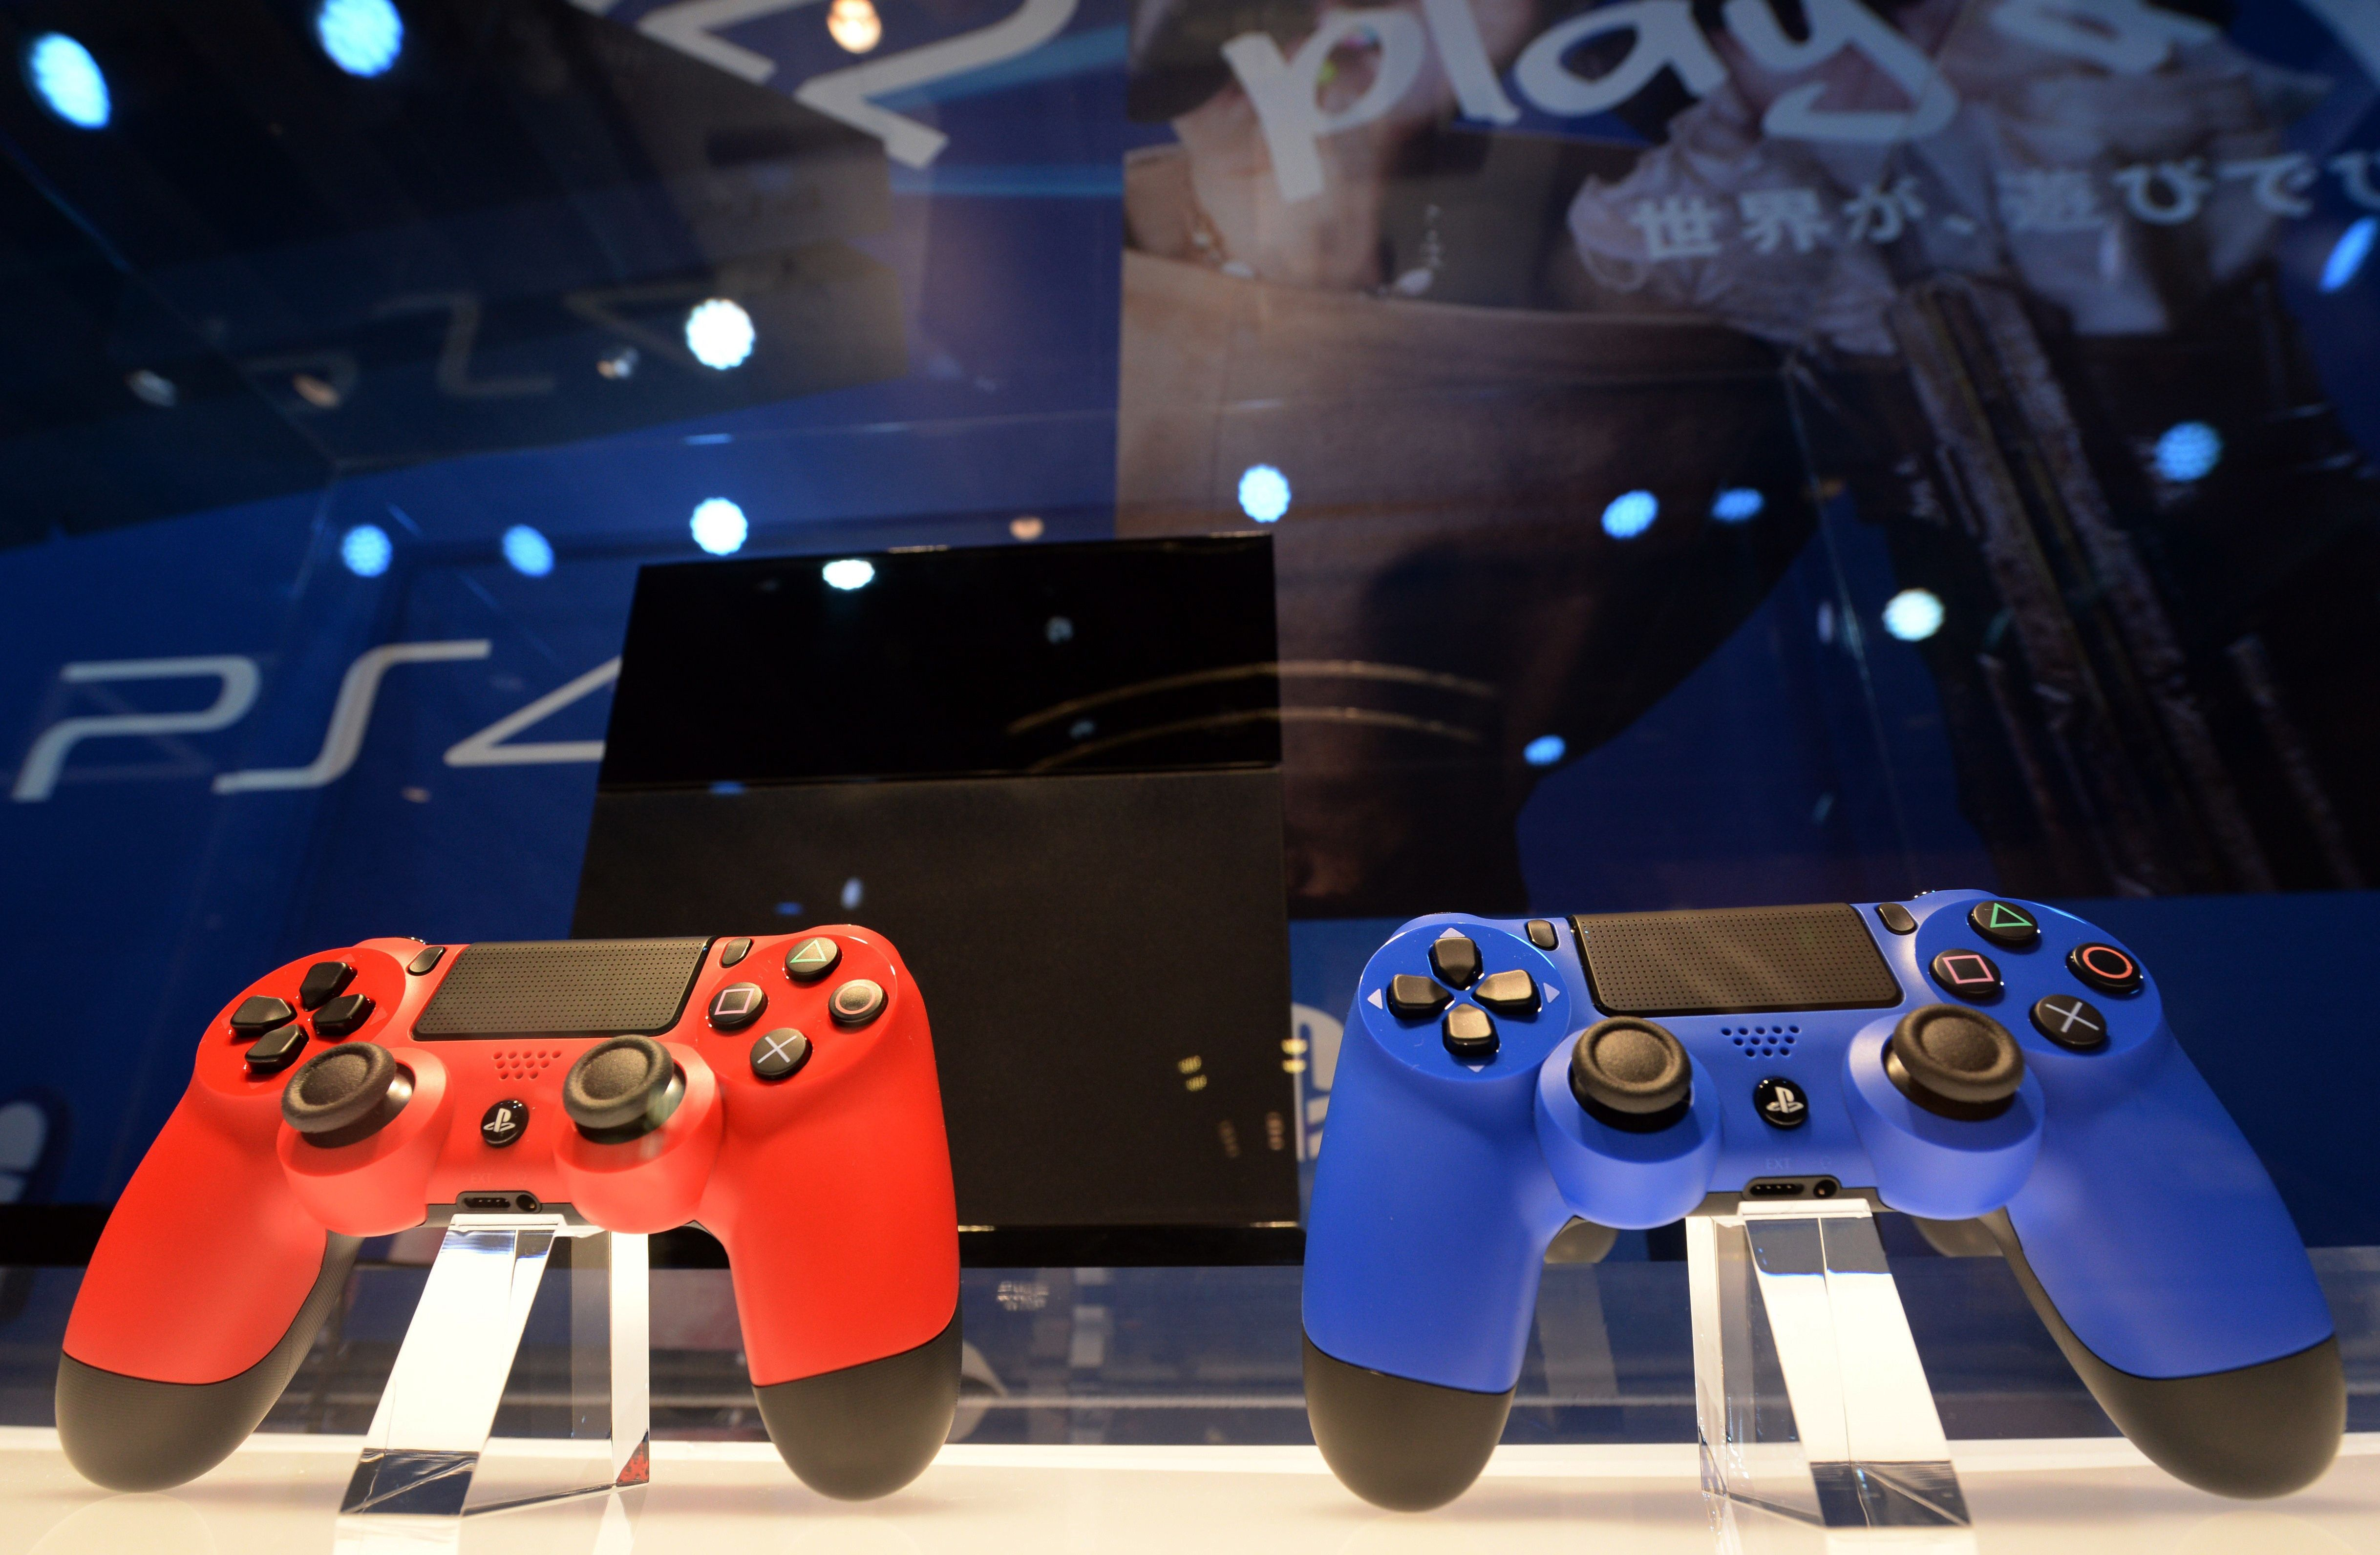 """This file picture taken on February 1, 2014 shows Sony's PlayStation 4 video game consoles, which will be launched in Japan on February 22, displayed at the """"Try! PlayStation 4! -2.22-"""" event at Ginza Sony building in Tokyo. Global sales of the PlayStation 4, launched in North America, South America and Europe end of last year, topped 5.3 million units as of February 8, Sony Computer Entertainment announced on February 18.      (AFP PHOTO / FILES / TOSHIFUMI KITAMURA)"""